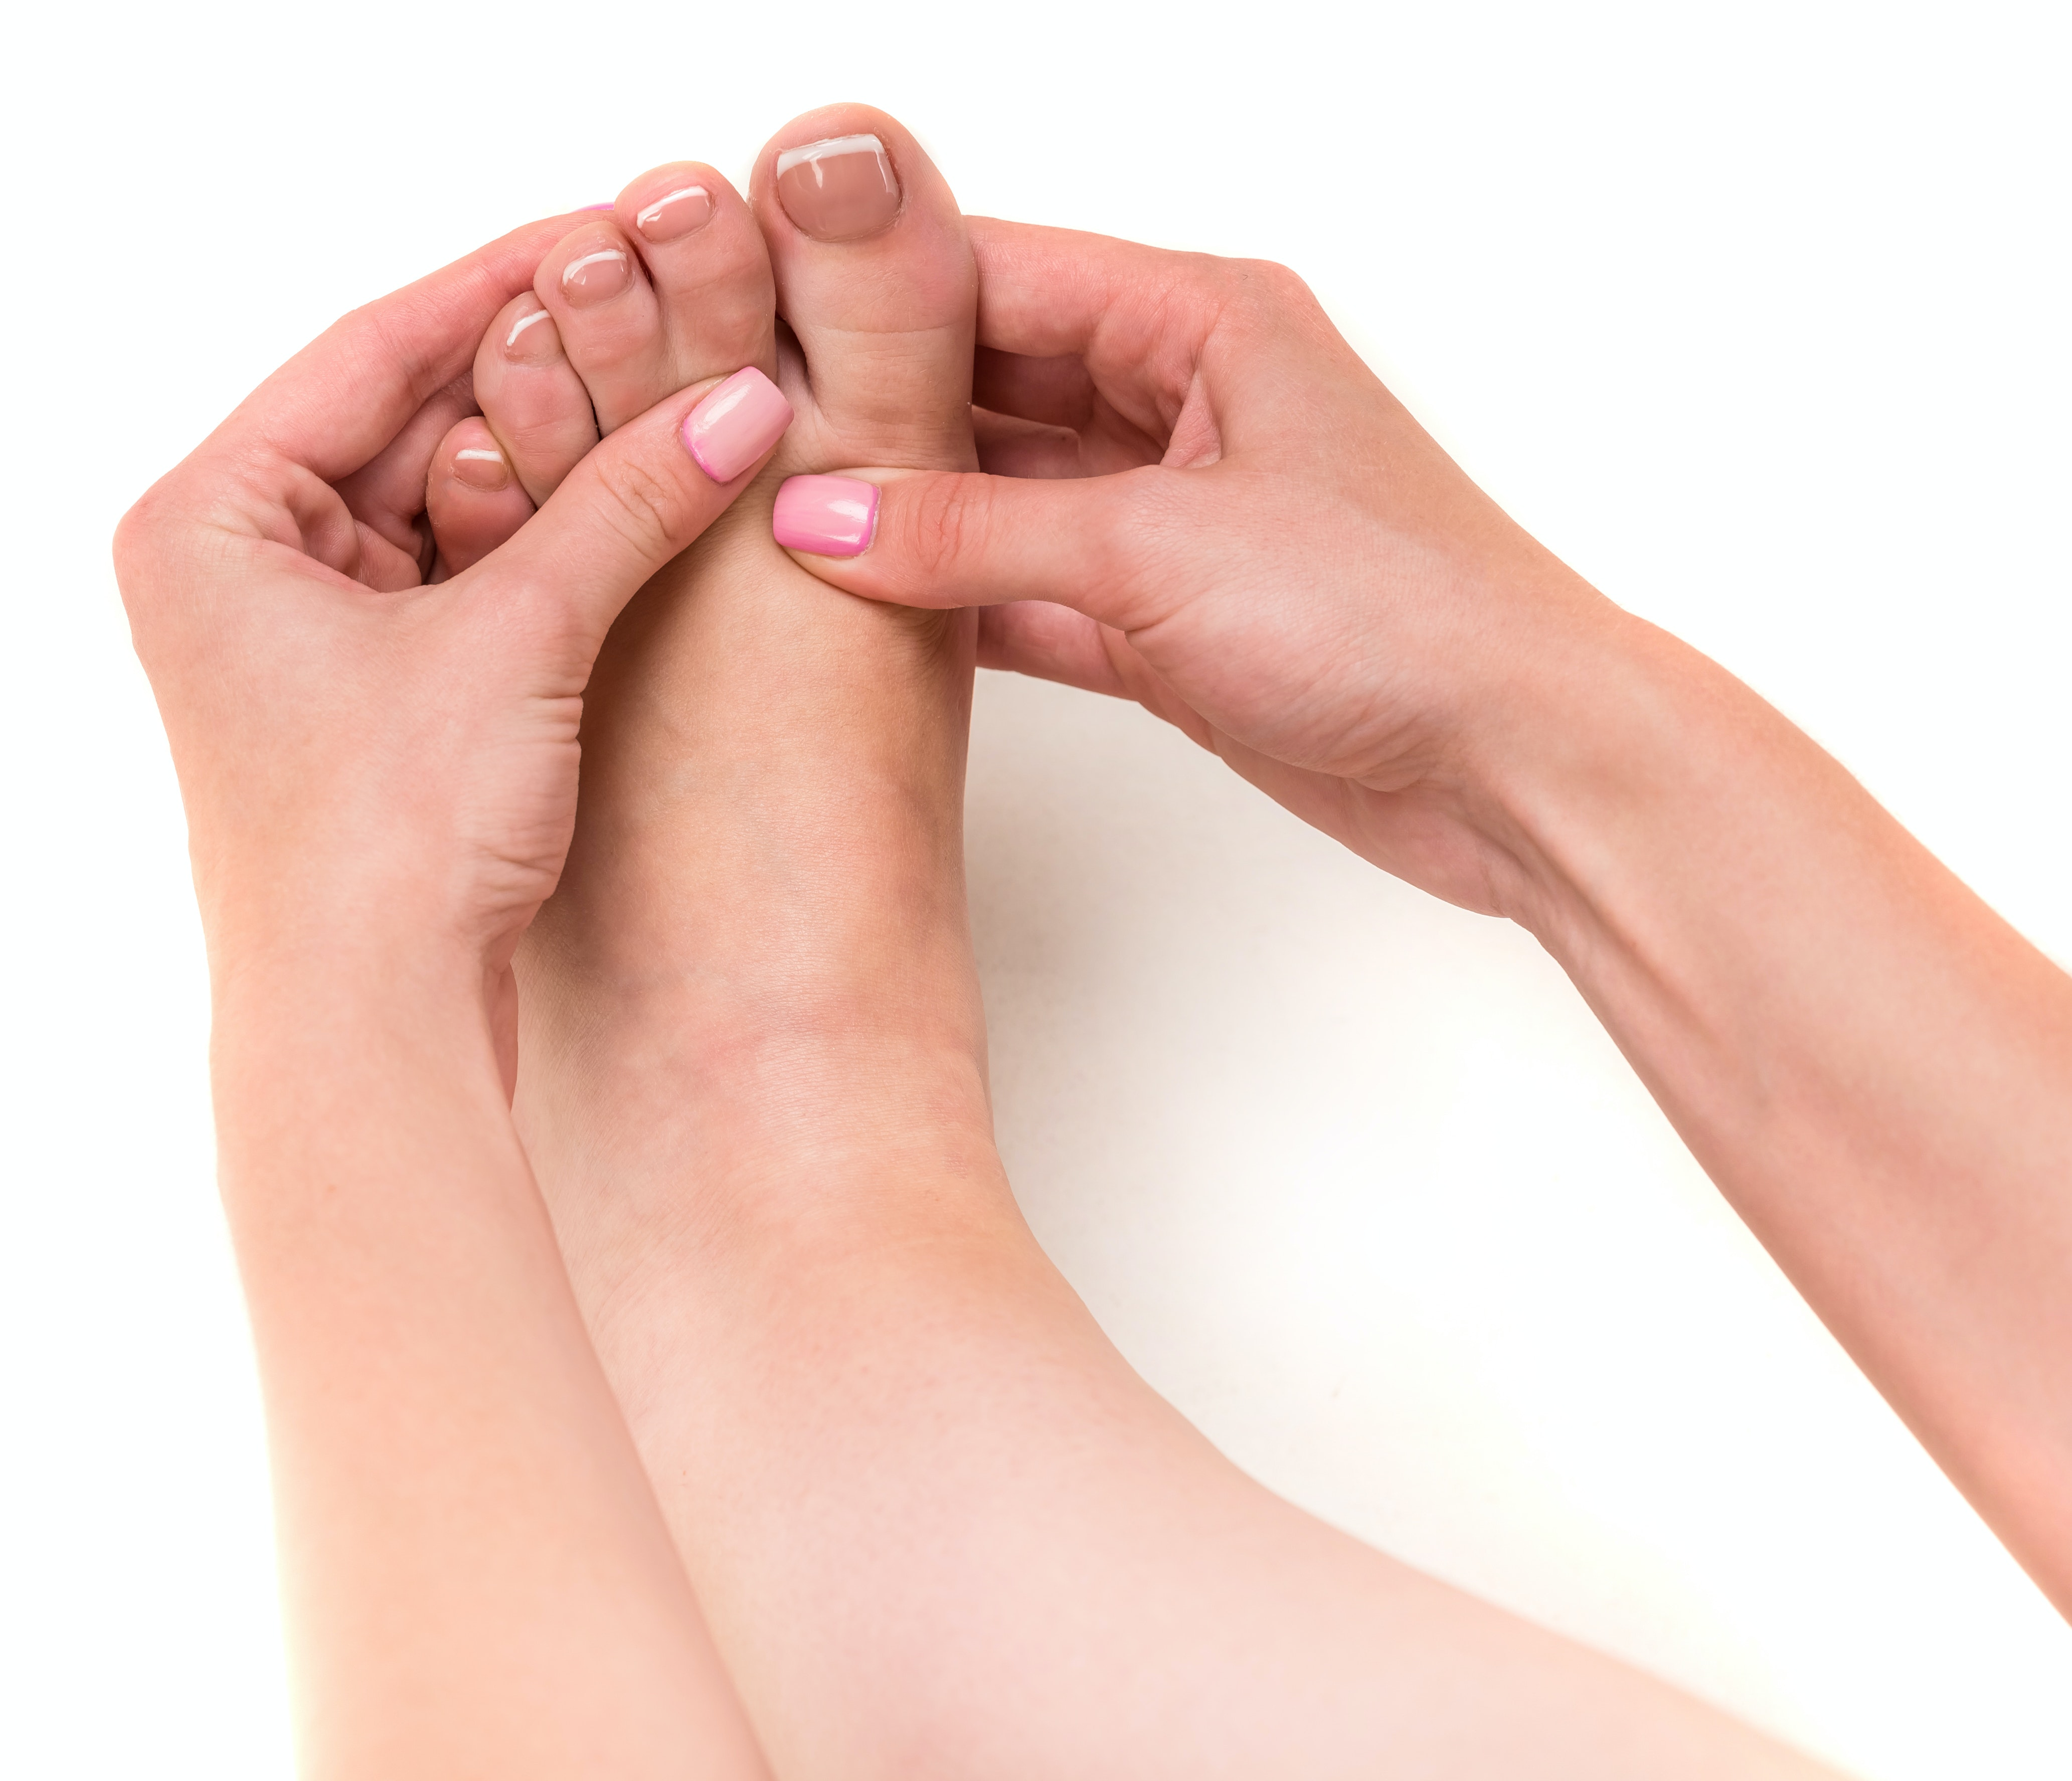 An image depicting a person suffering from toe pain symptoms